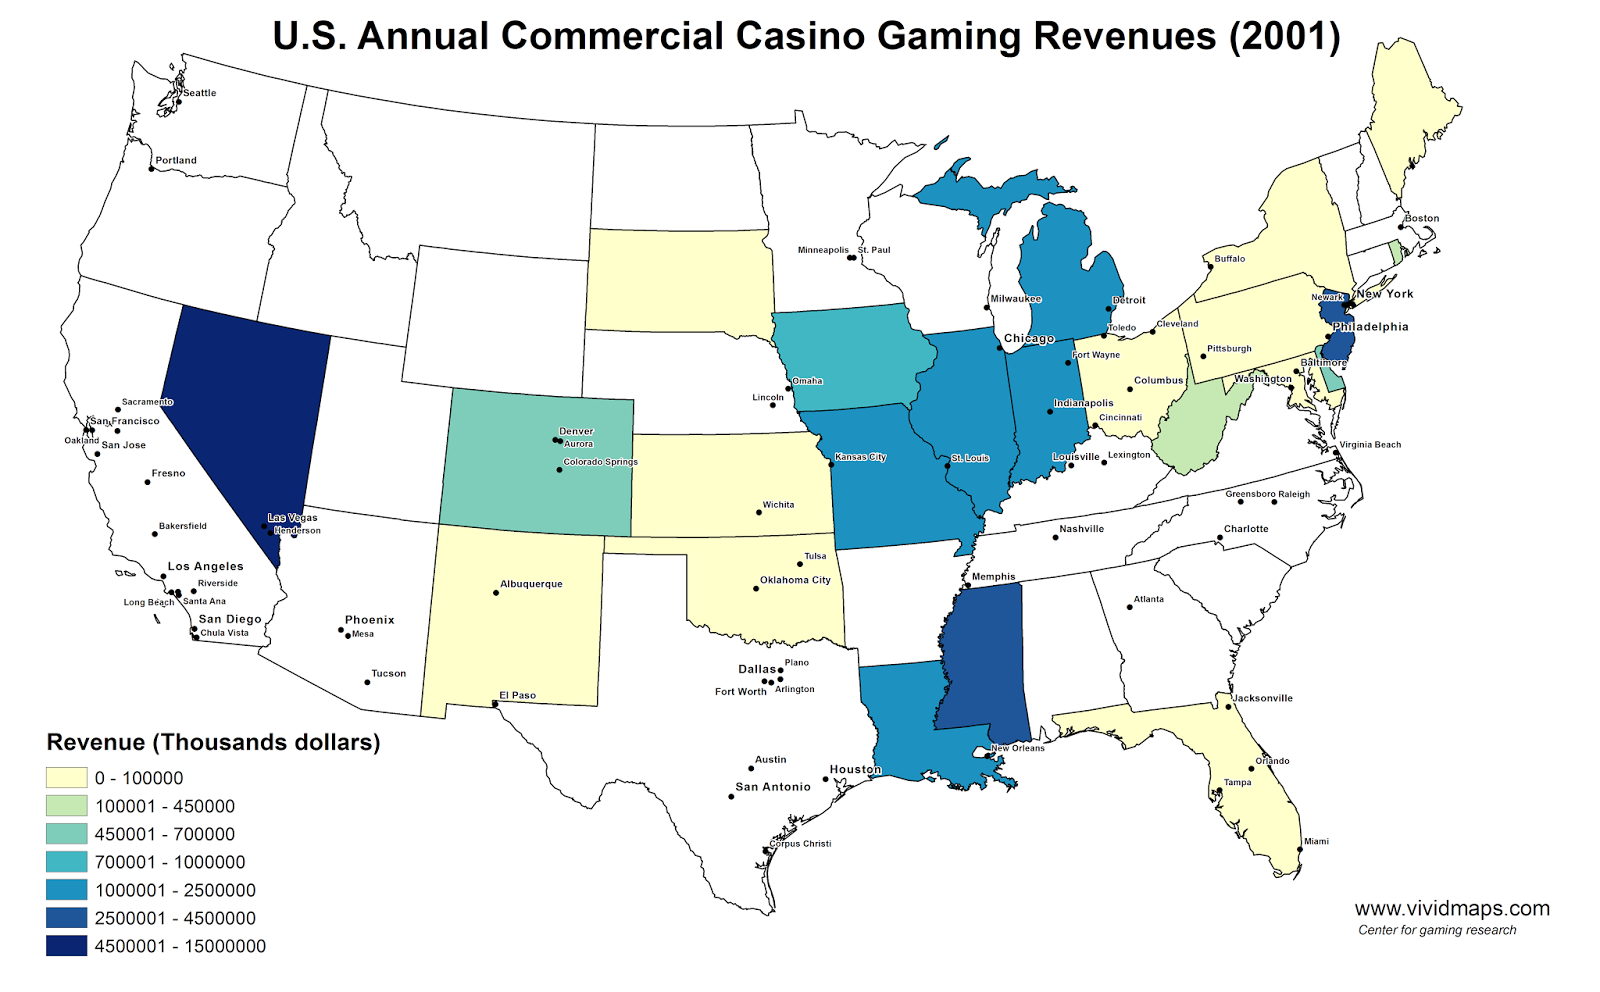 U.S. Annual Commercial Casino Gaming Revenues (2001)